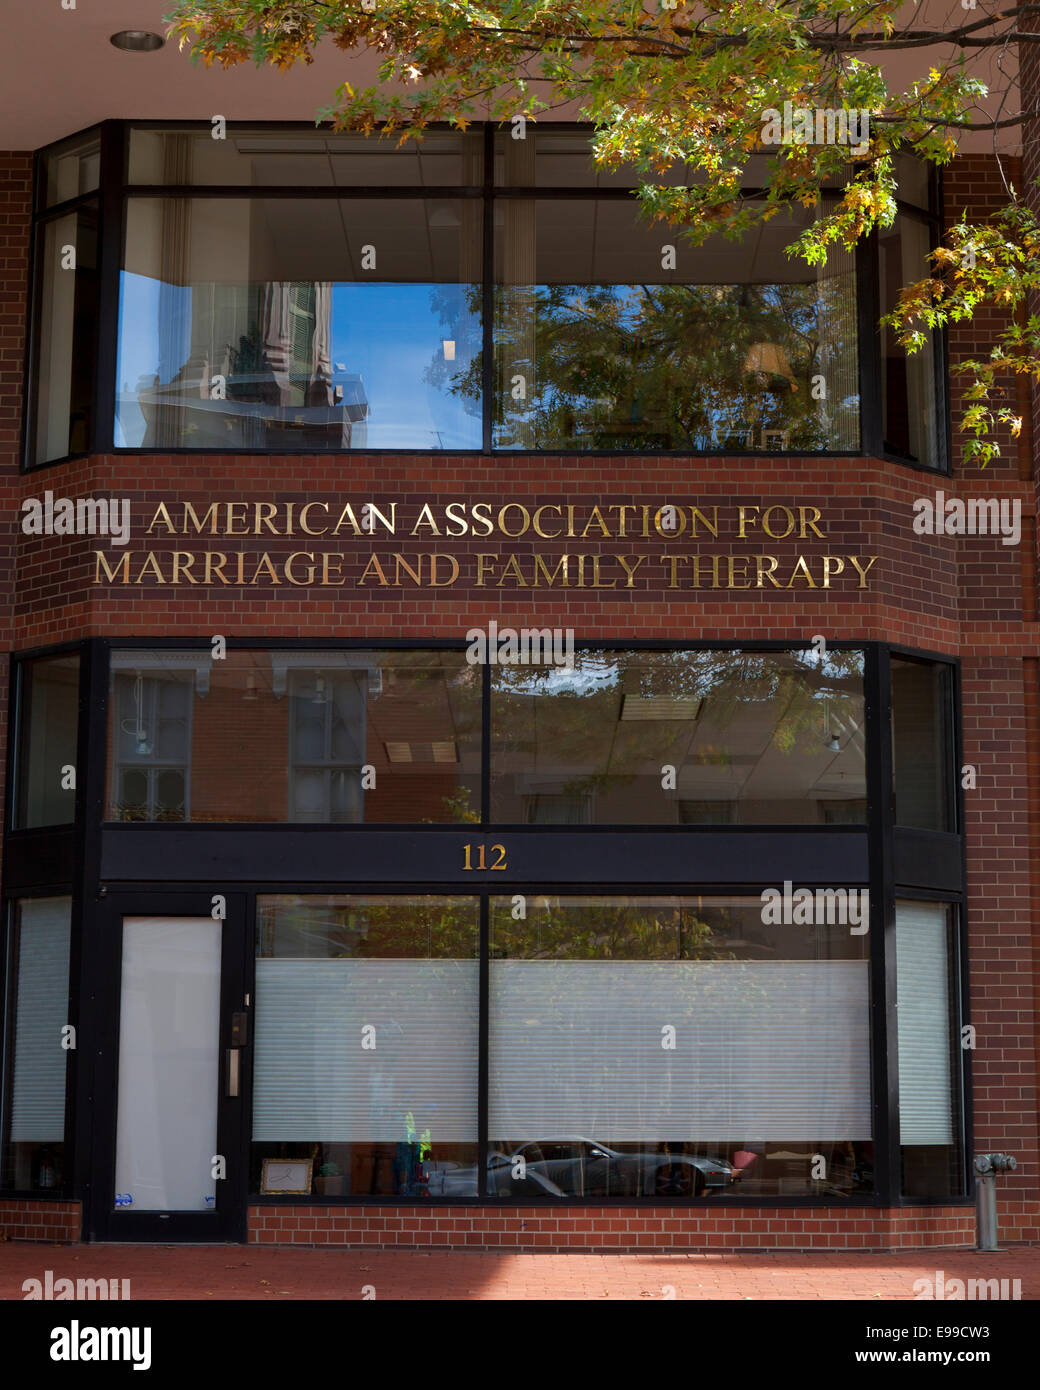 American Association of Marriage and Family Therapy HQ building - Alexandria, Virginia USA - Stock Image